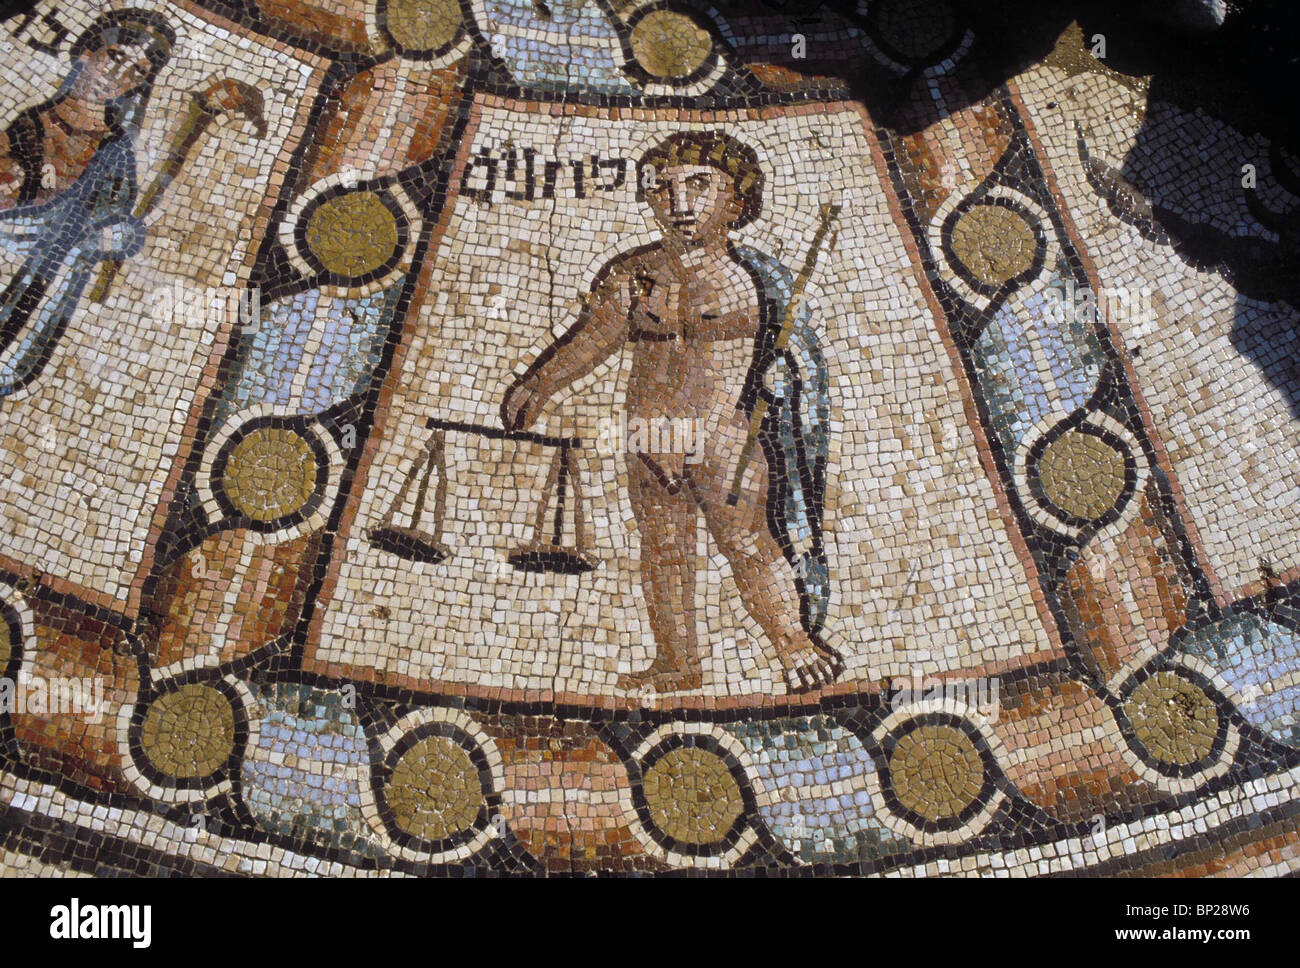 2363. HAMAT TIBERIAS SYNAGOGUE MOSAIC FLOOR. DETAIL FROM THE ZODIAC PANEL DEPICTING THE SIGN OF LIBRA - Stock Image